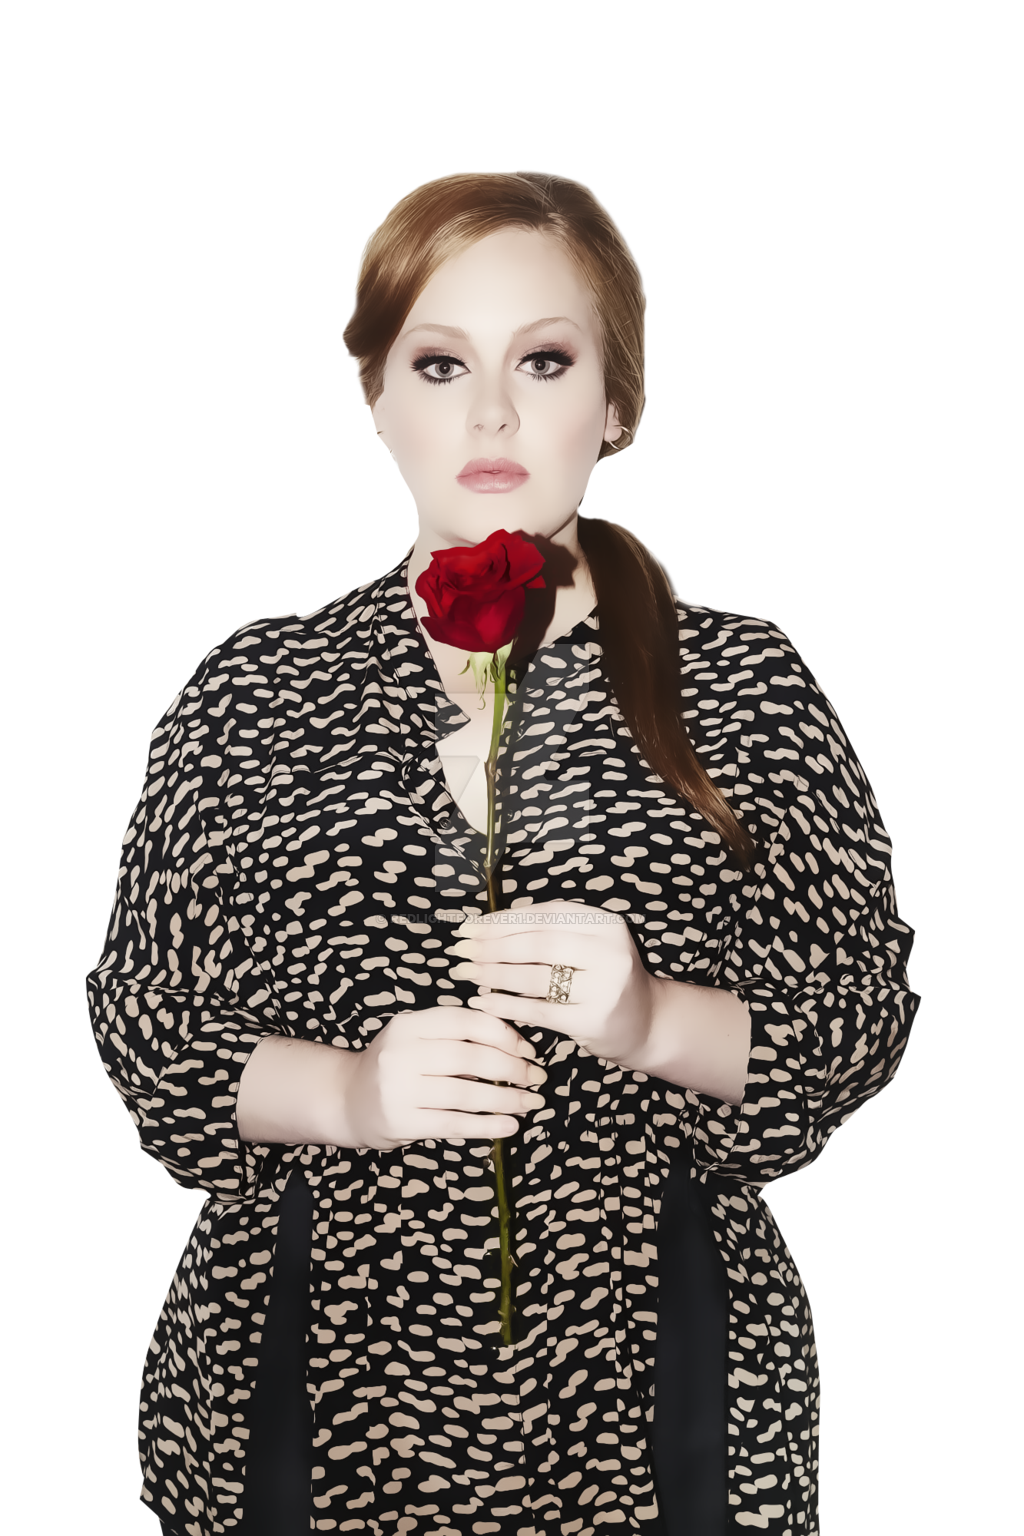 Adele Png Hd Png Image - Adele, Transparent background PNG HD thumbnail